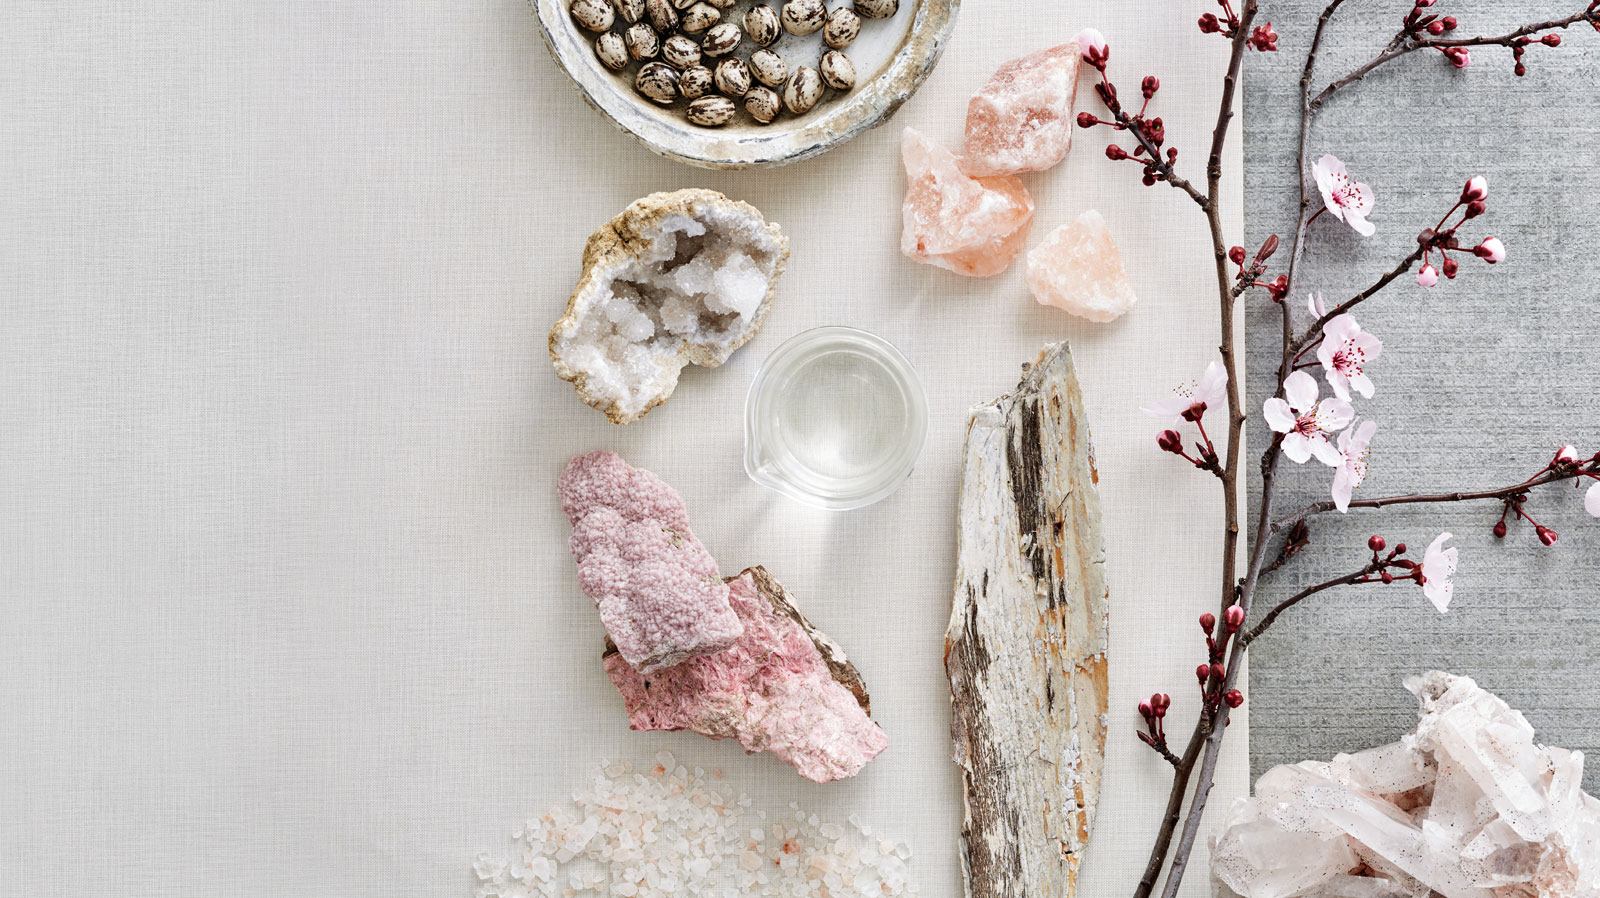 Ingredients for Hairprint  | Trinette+Chris Photographers